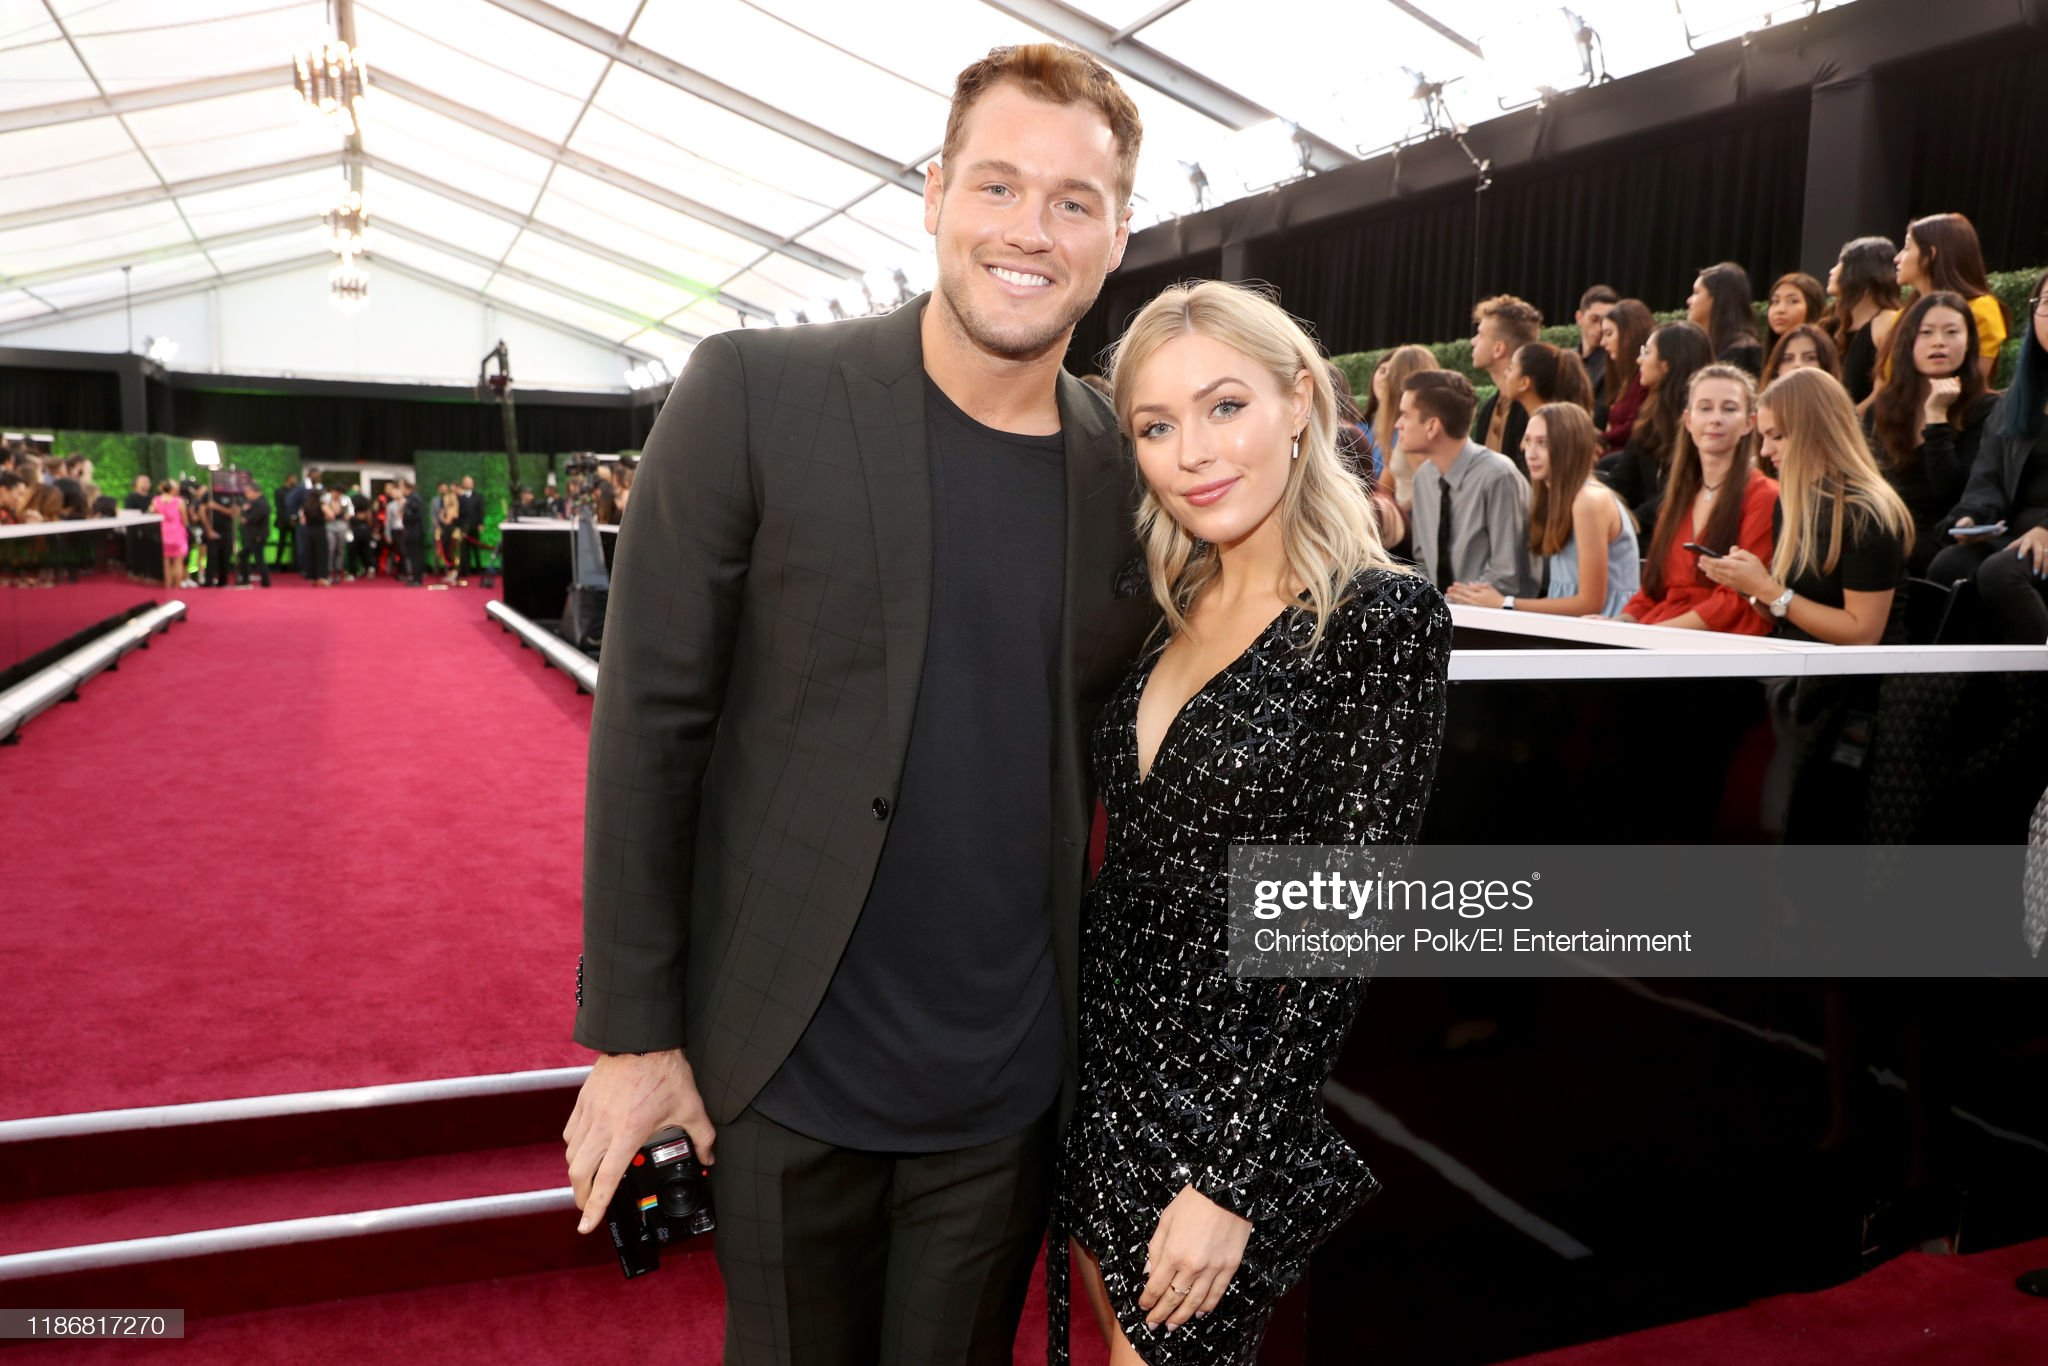 Colton Underwood & Cassie Randolph - Bachelor 23 - Discussion - Page 14 Pictured-colton-underwood-and-cassie-randolph-arrive-to-the-2019-e-picture-id1186817270?s=2048x2048